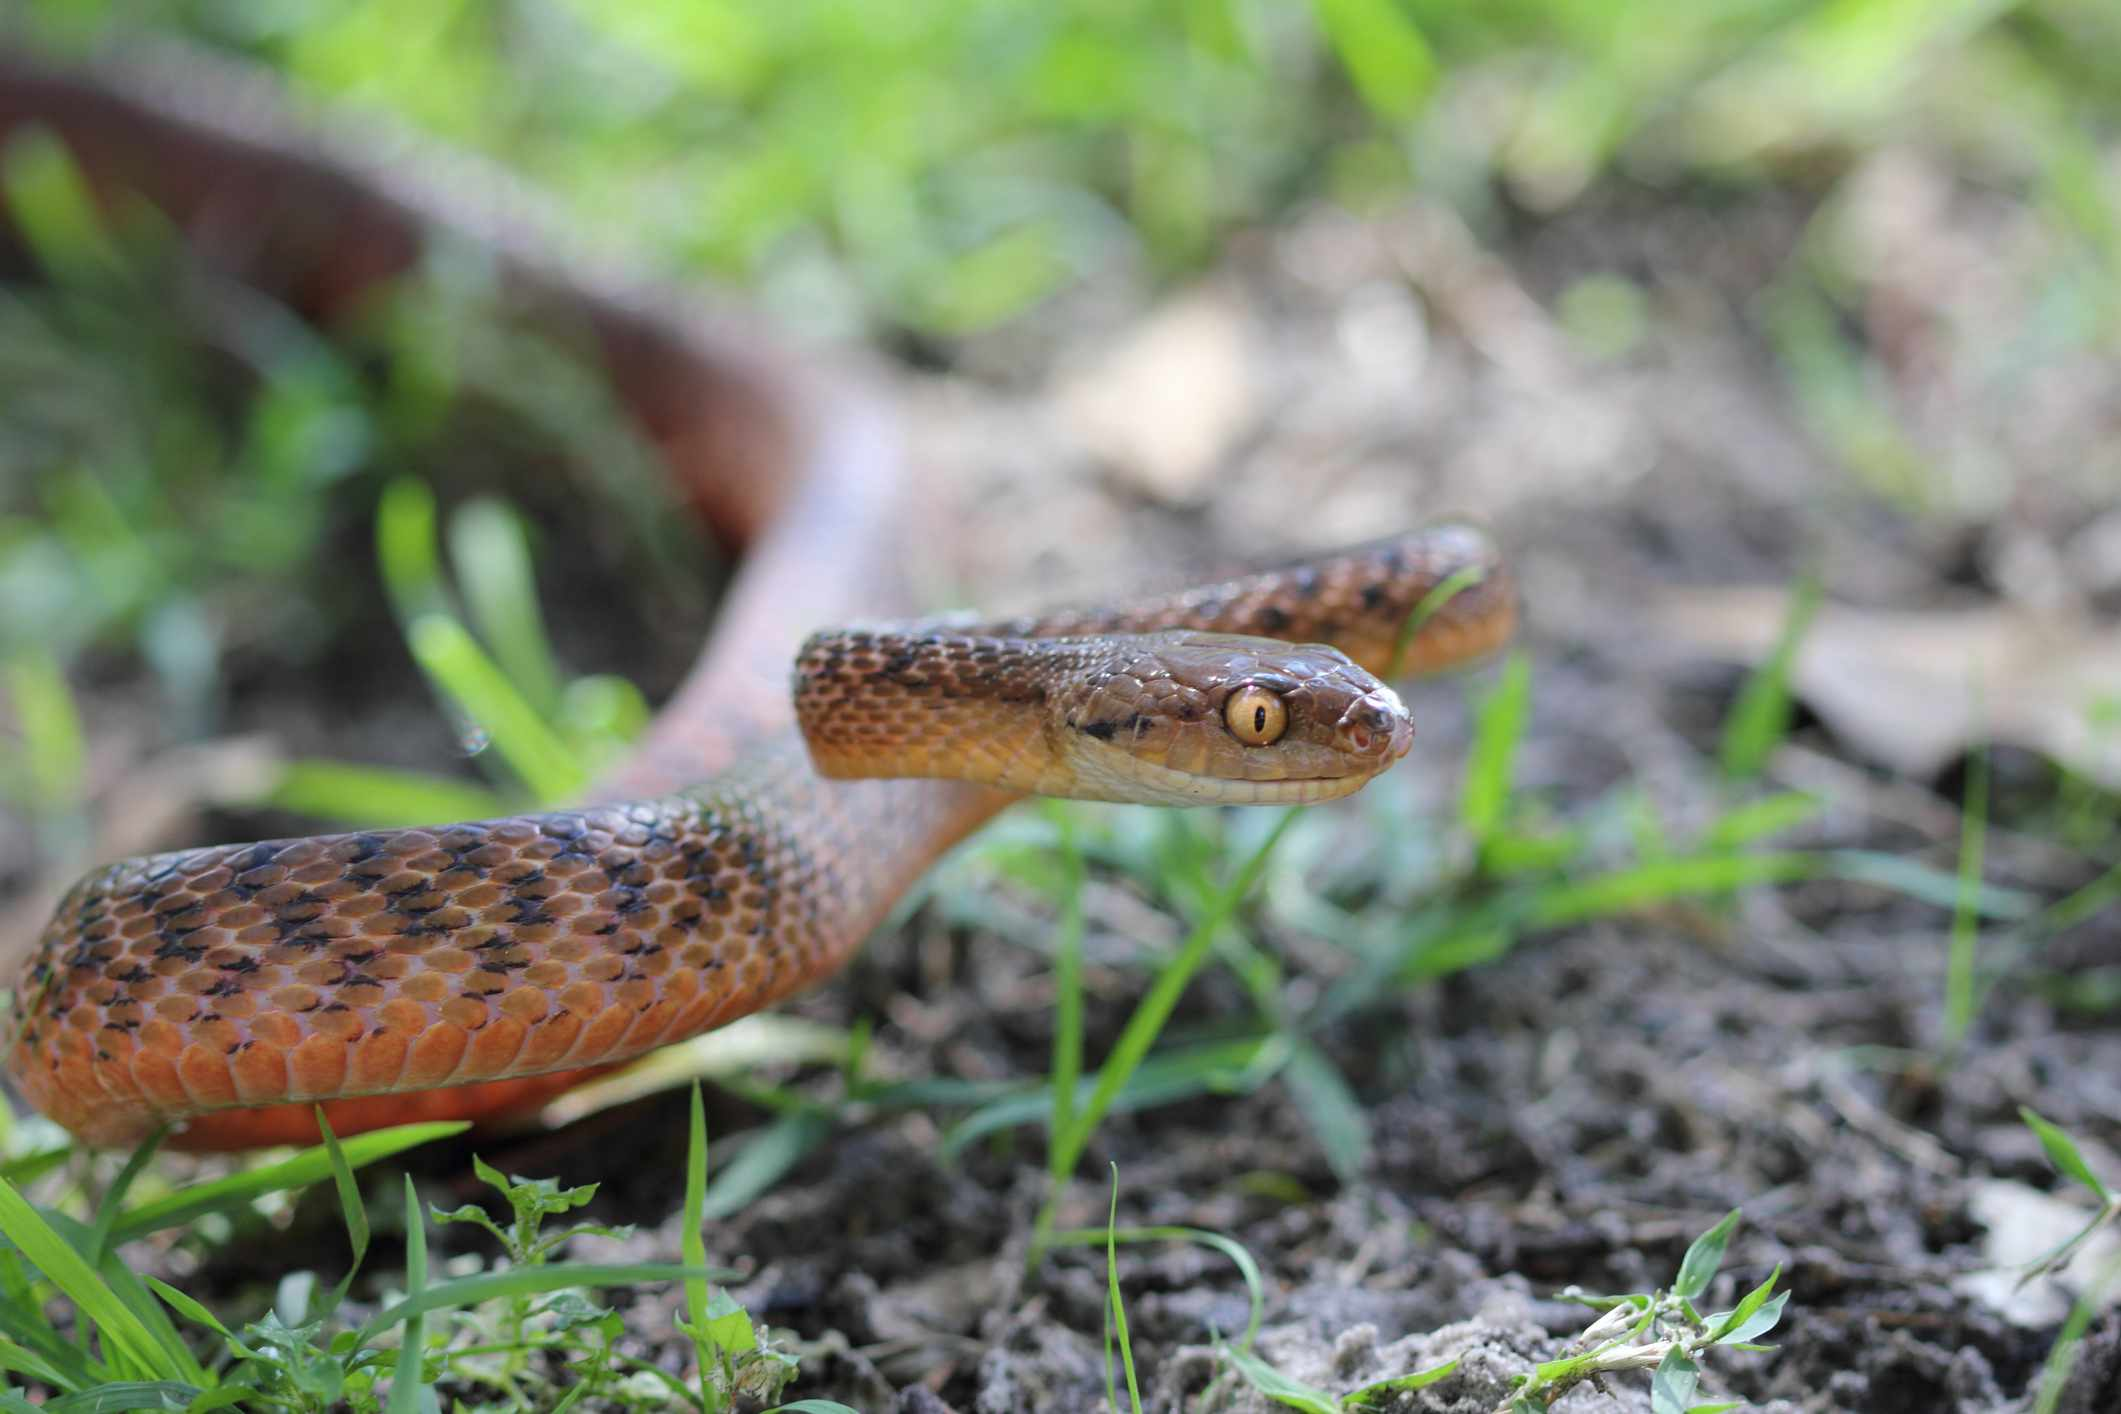 A brown snake with yellow eyes in a defensive posture in grass